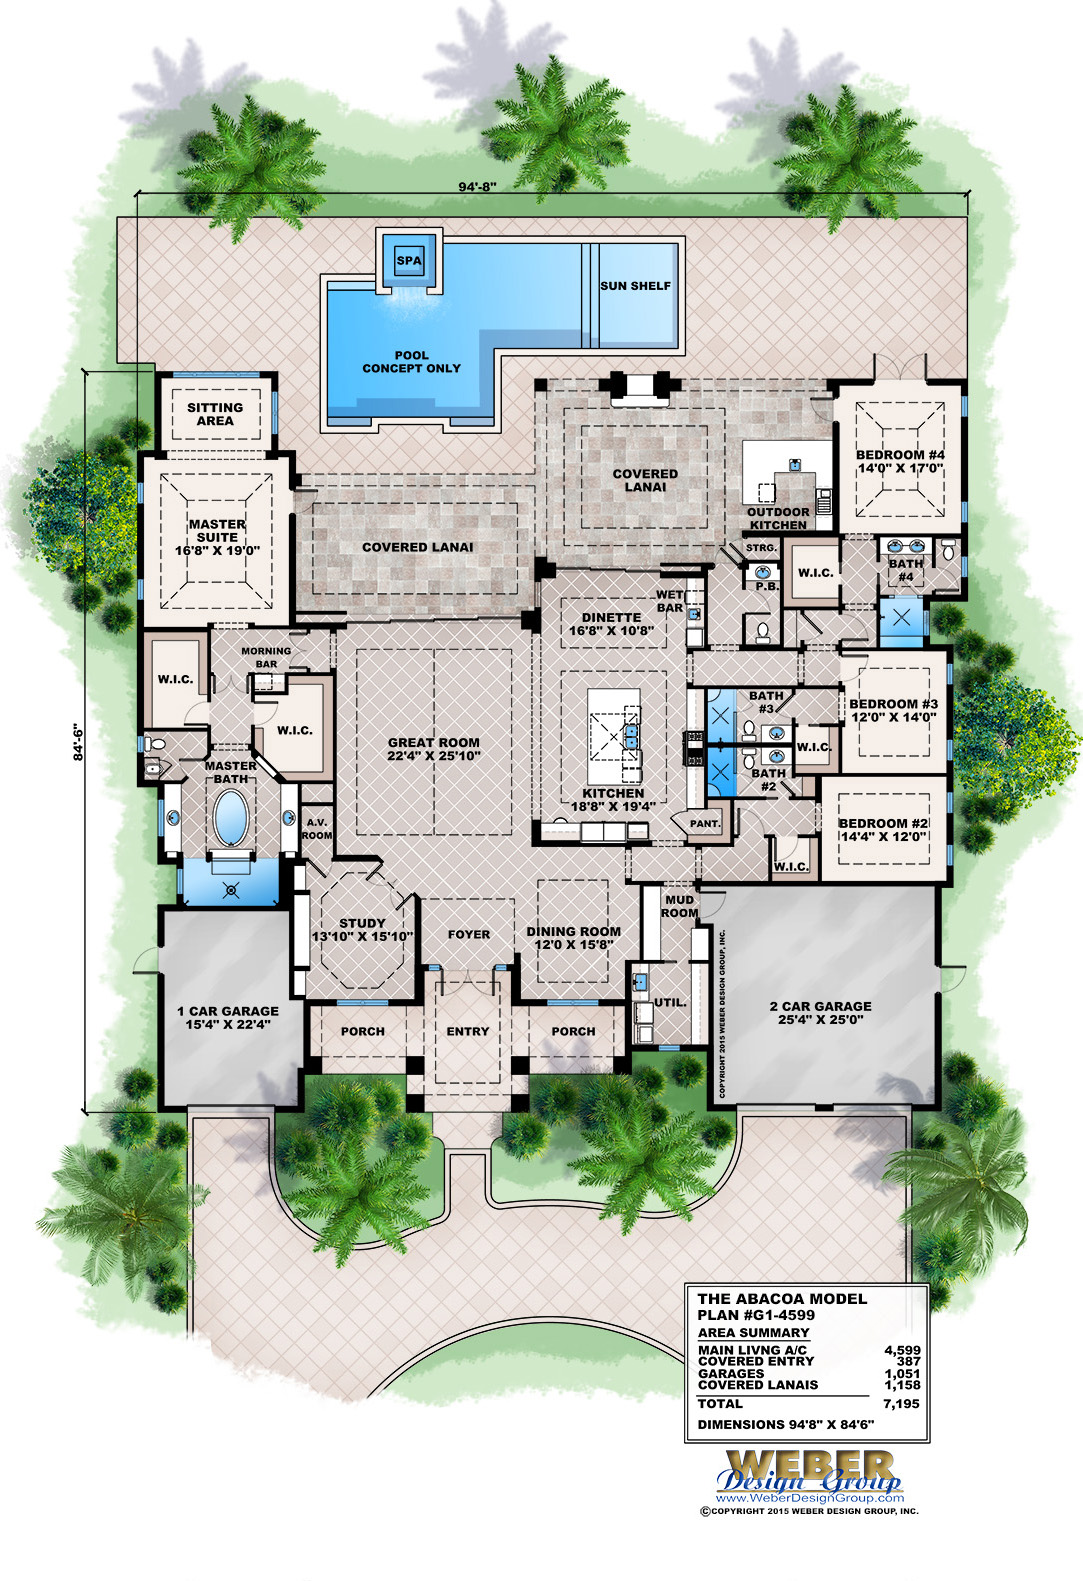 Caribbean island style home plans for Weber house plans